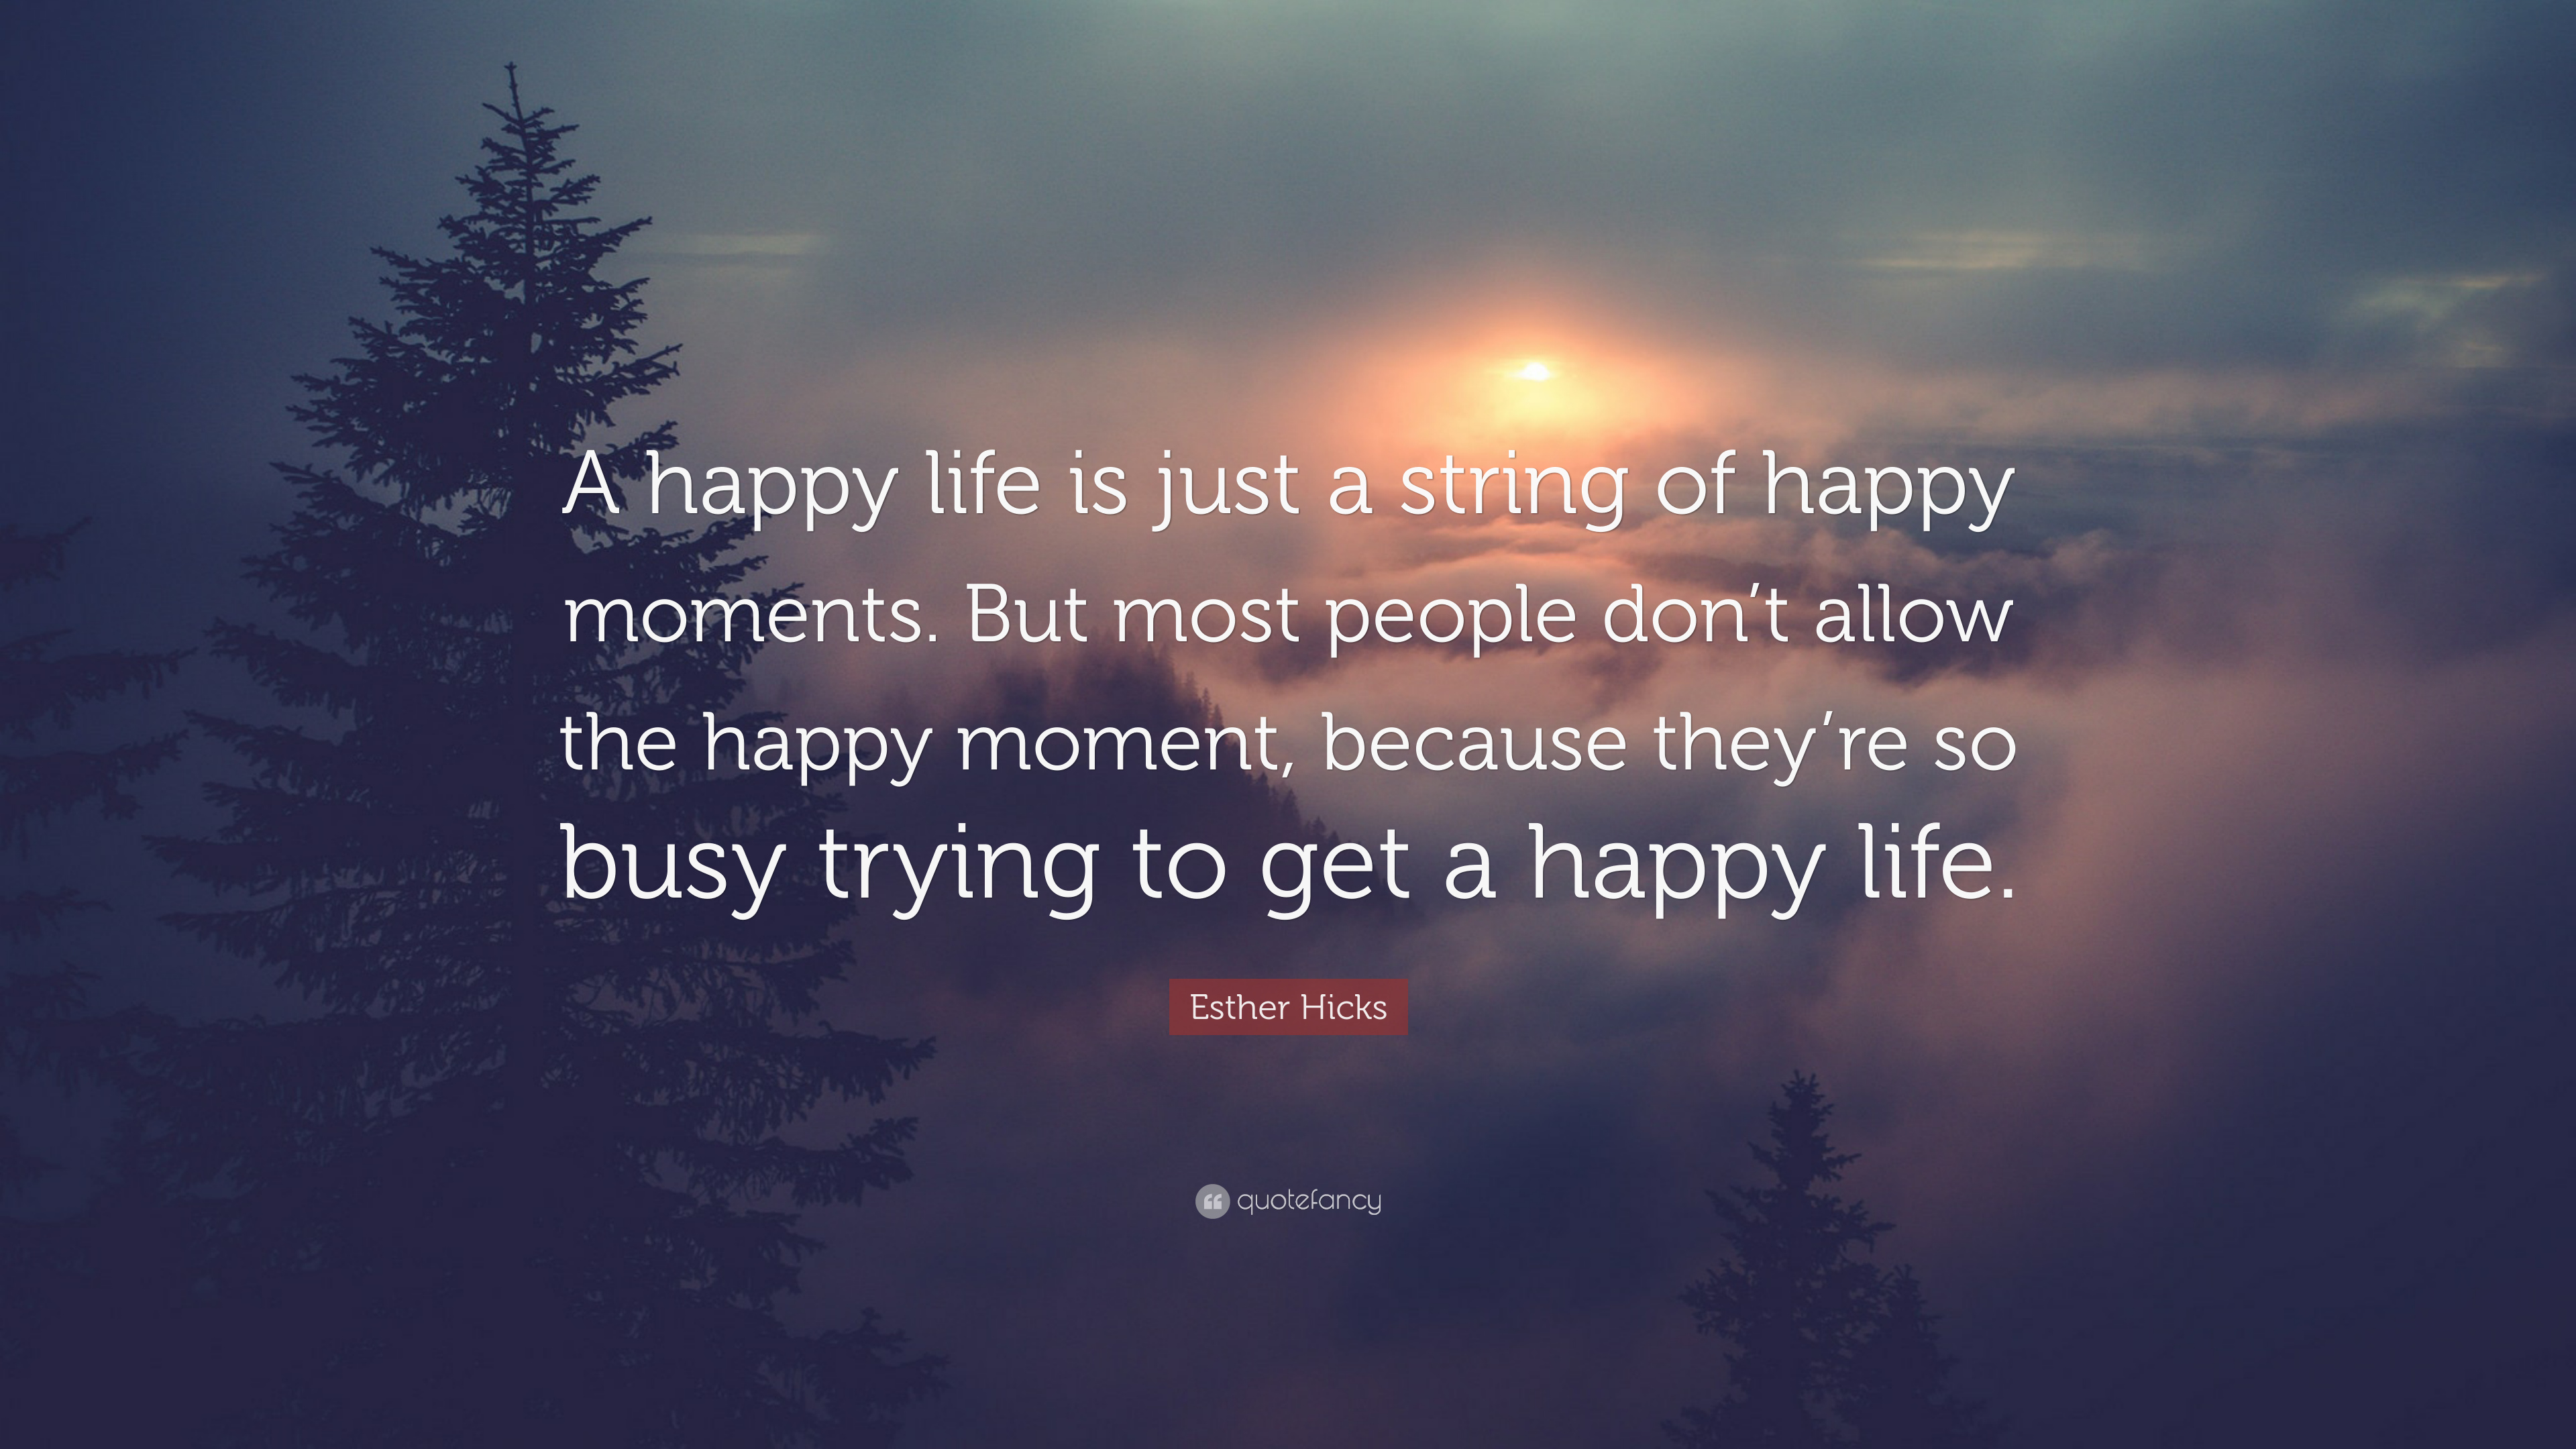 Esther Hicks Quote A Happy Life Is Just A String Of Happy Moments But Most People Don T Allow The Happy Moment Because They Re So Busy Tr 7 Wallpapers Quotefancy